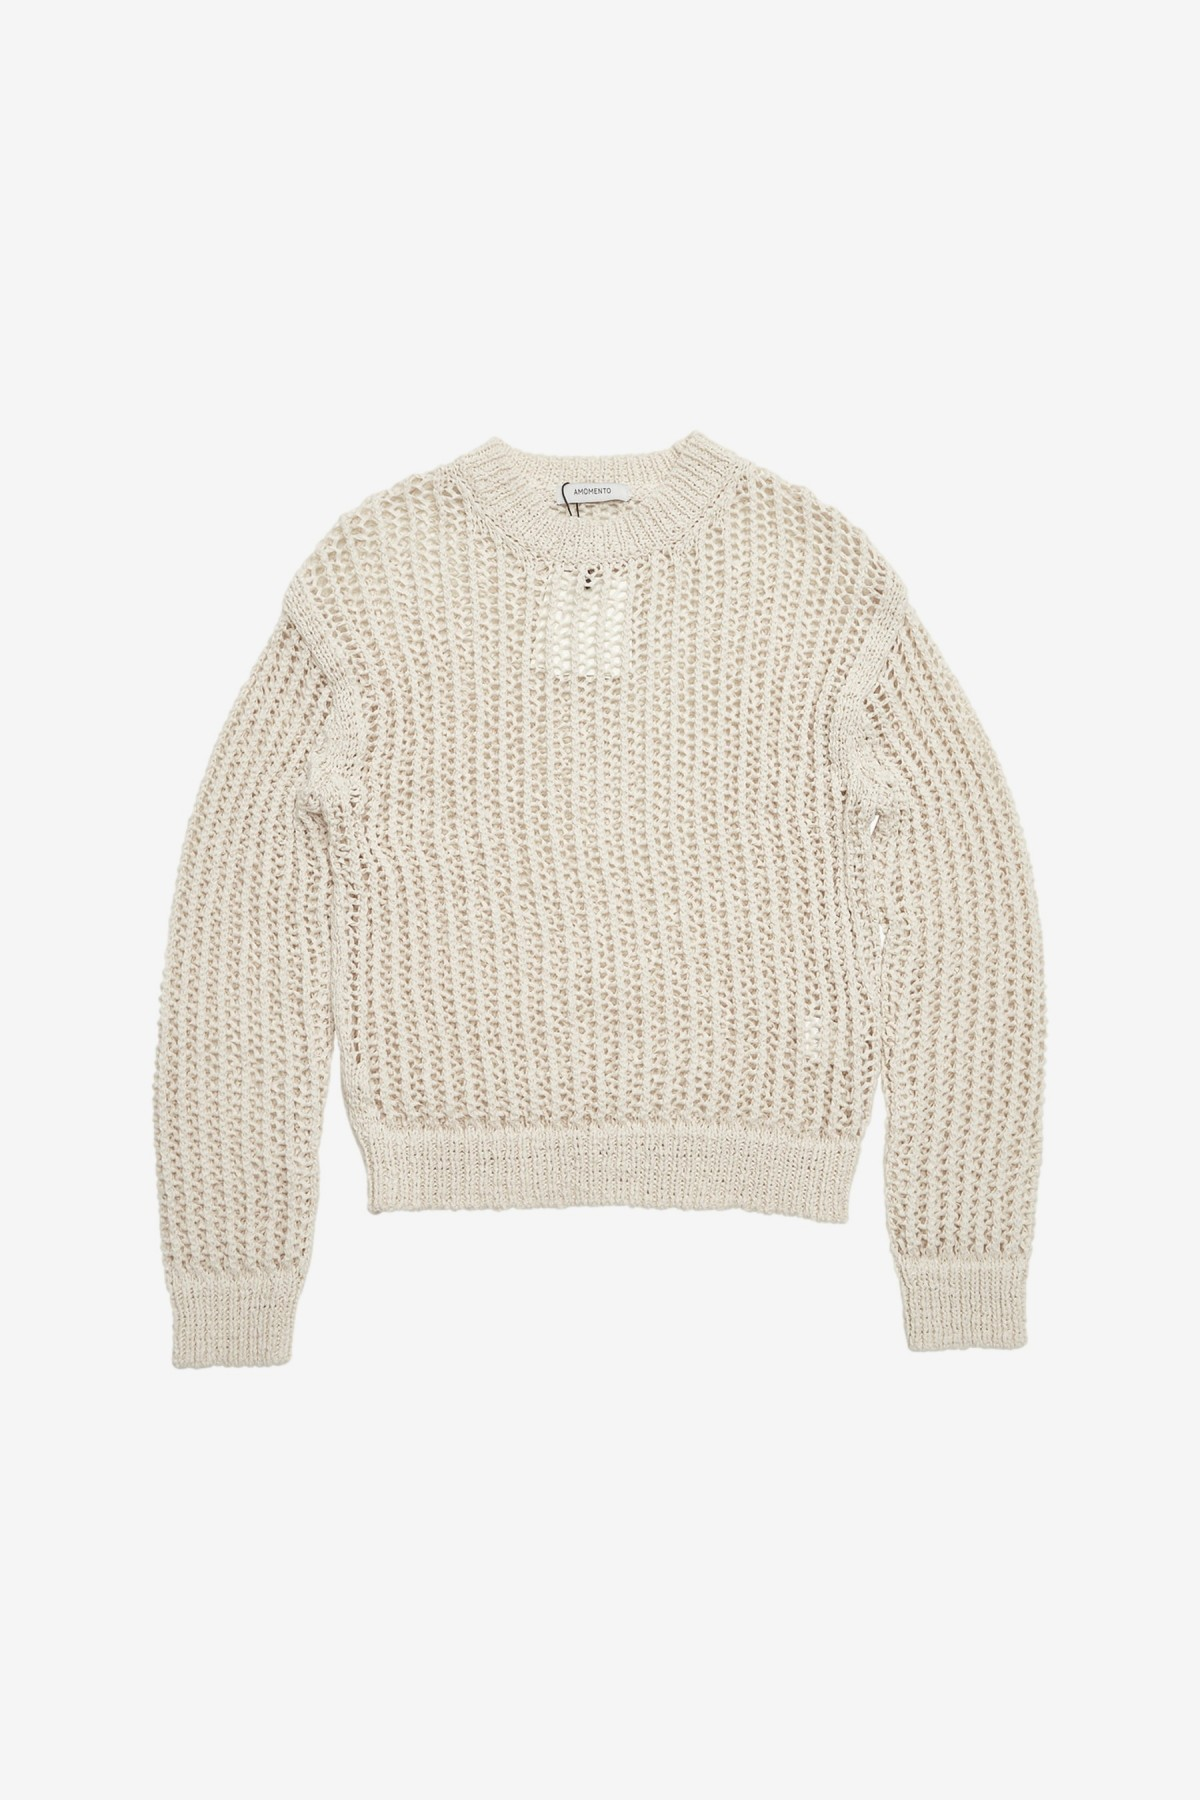 Amomento Crochet Pullover in Ivory